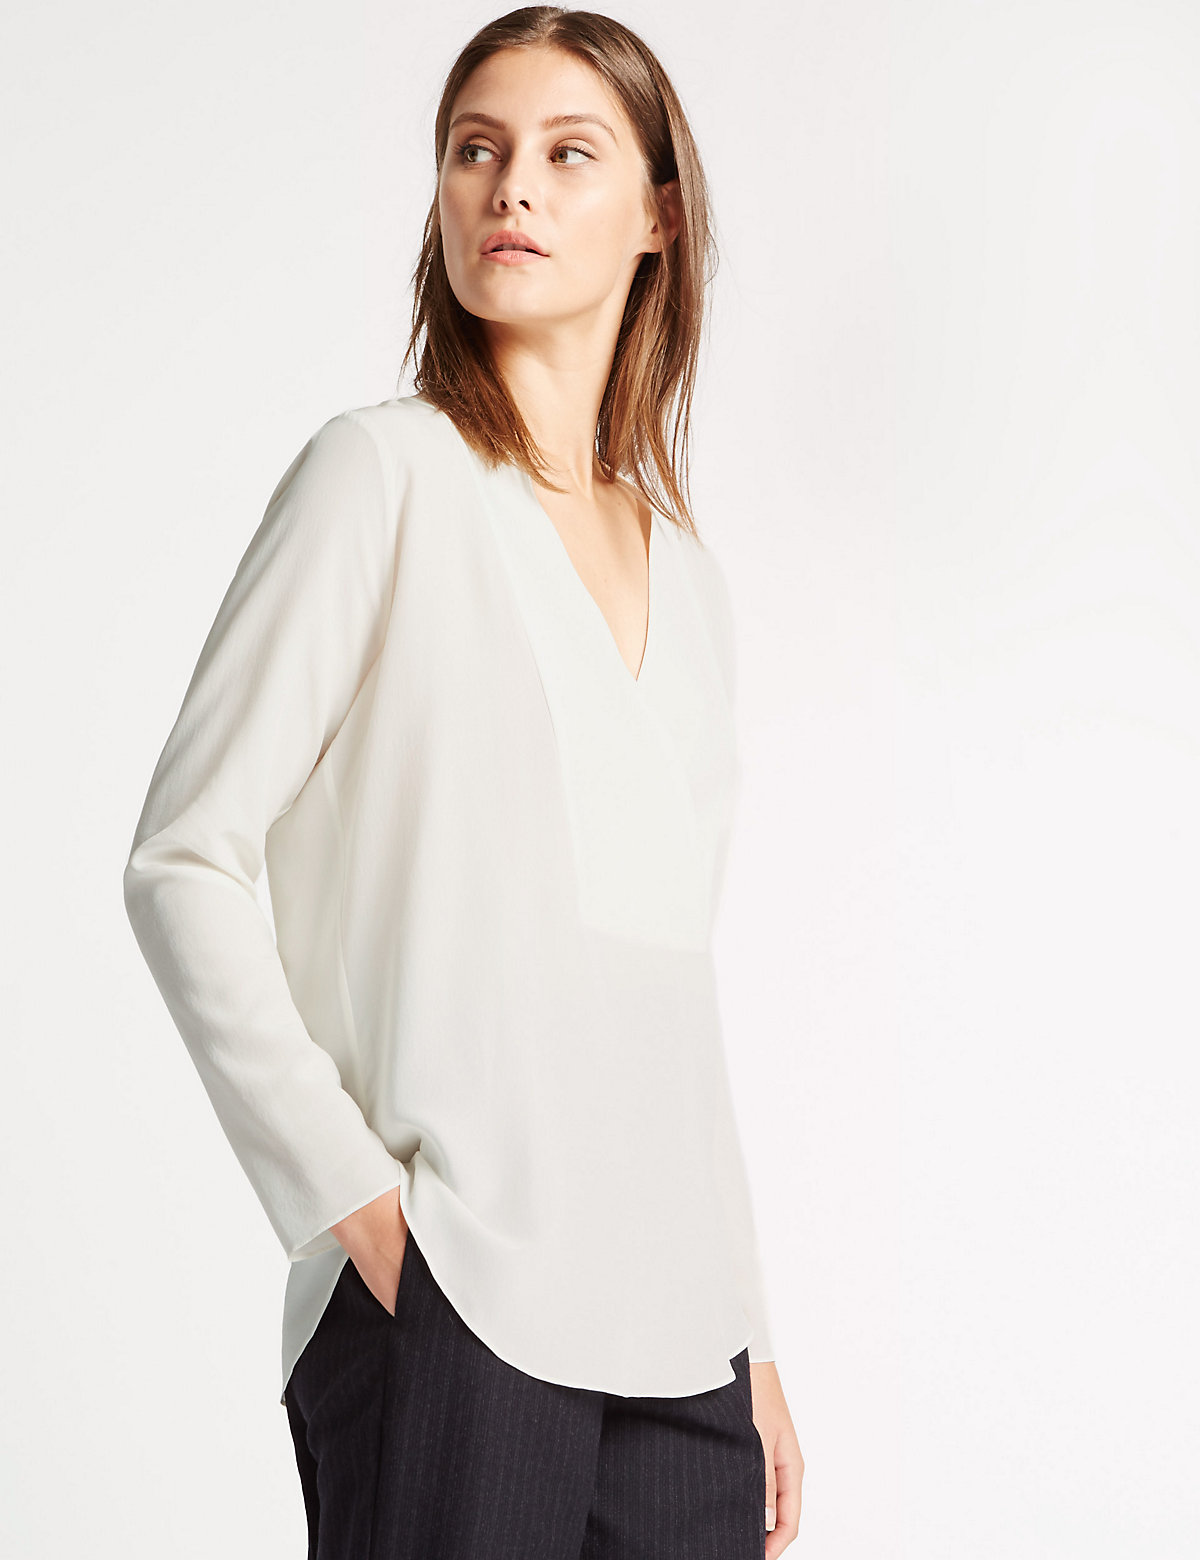 Best Of British For M&s Collection Pure Silk V-neck Blouse